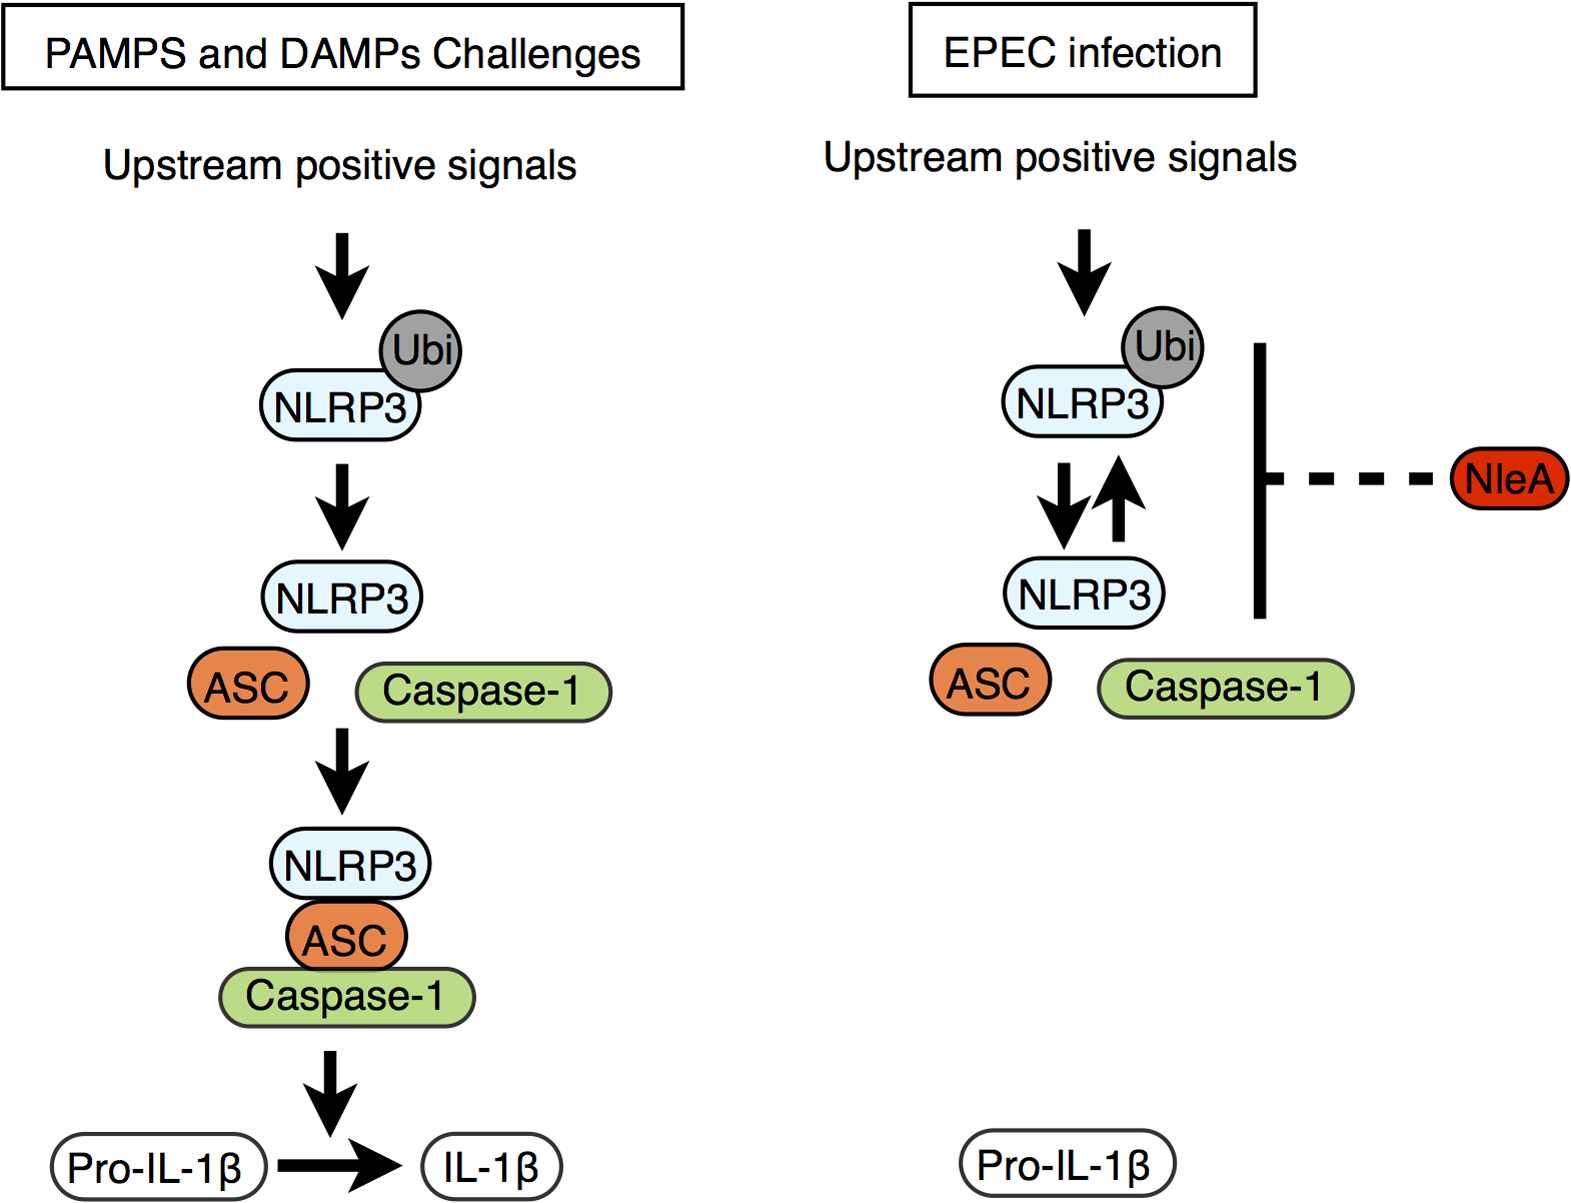 Proposed function of NleA as an inhibitor of NLRP3.